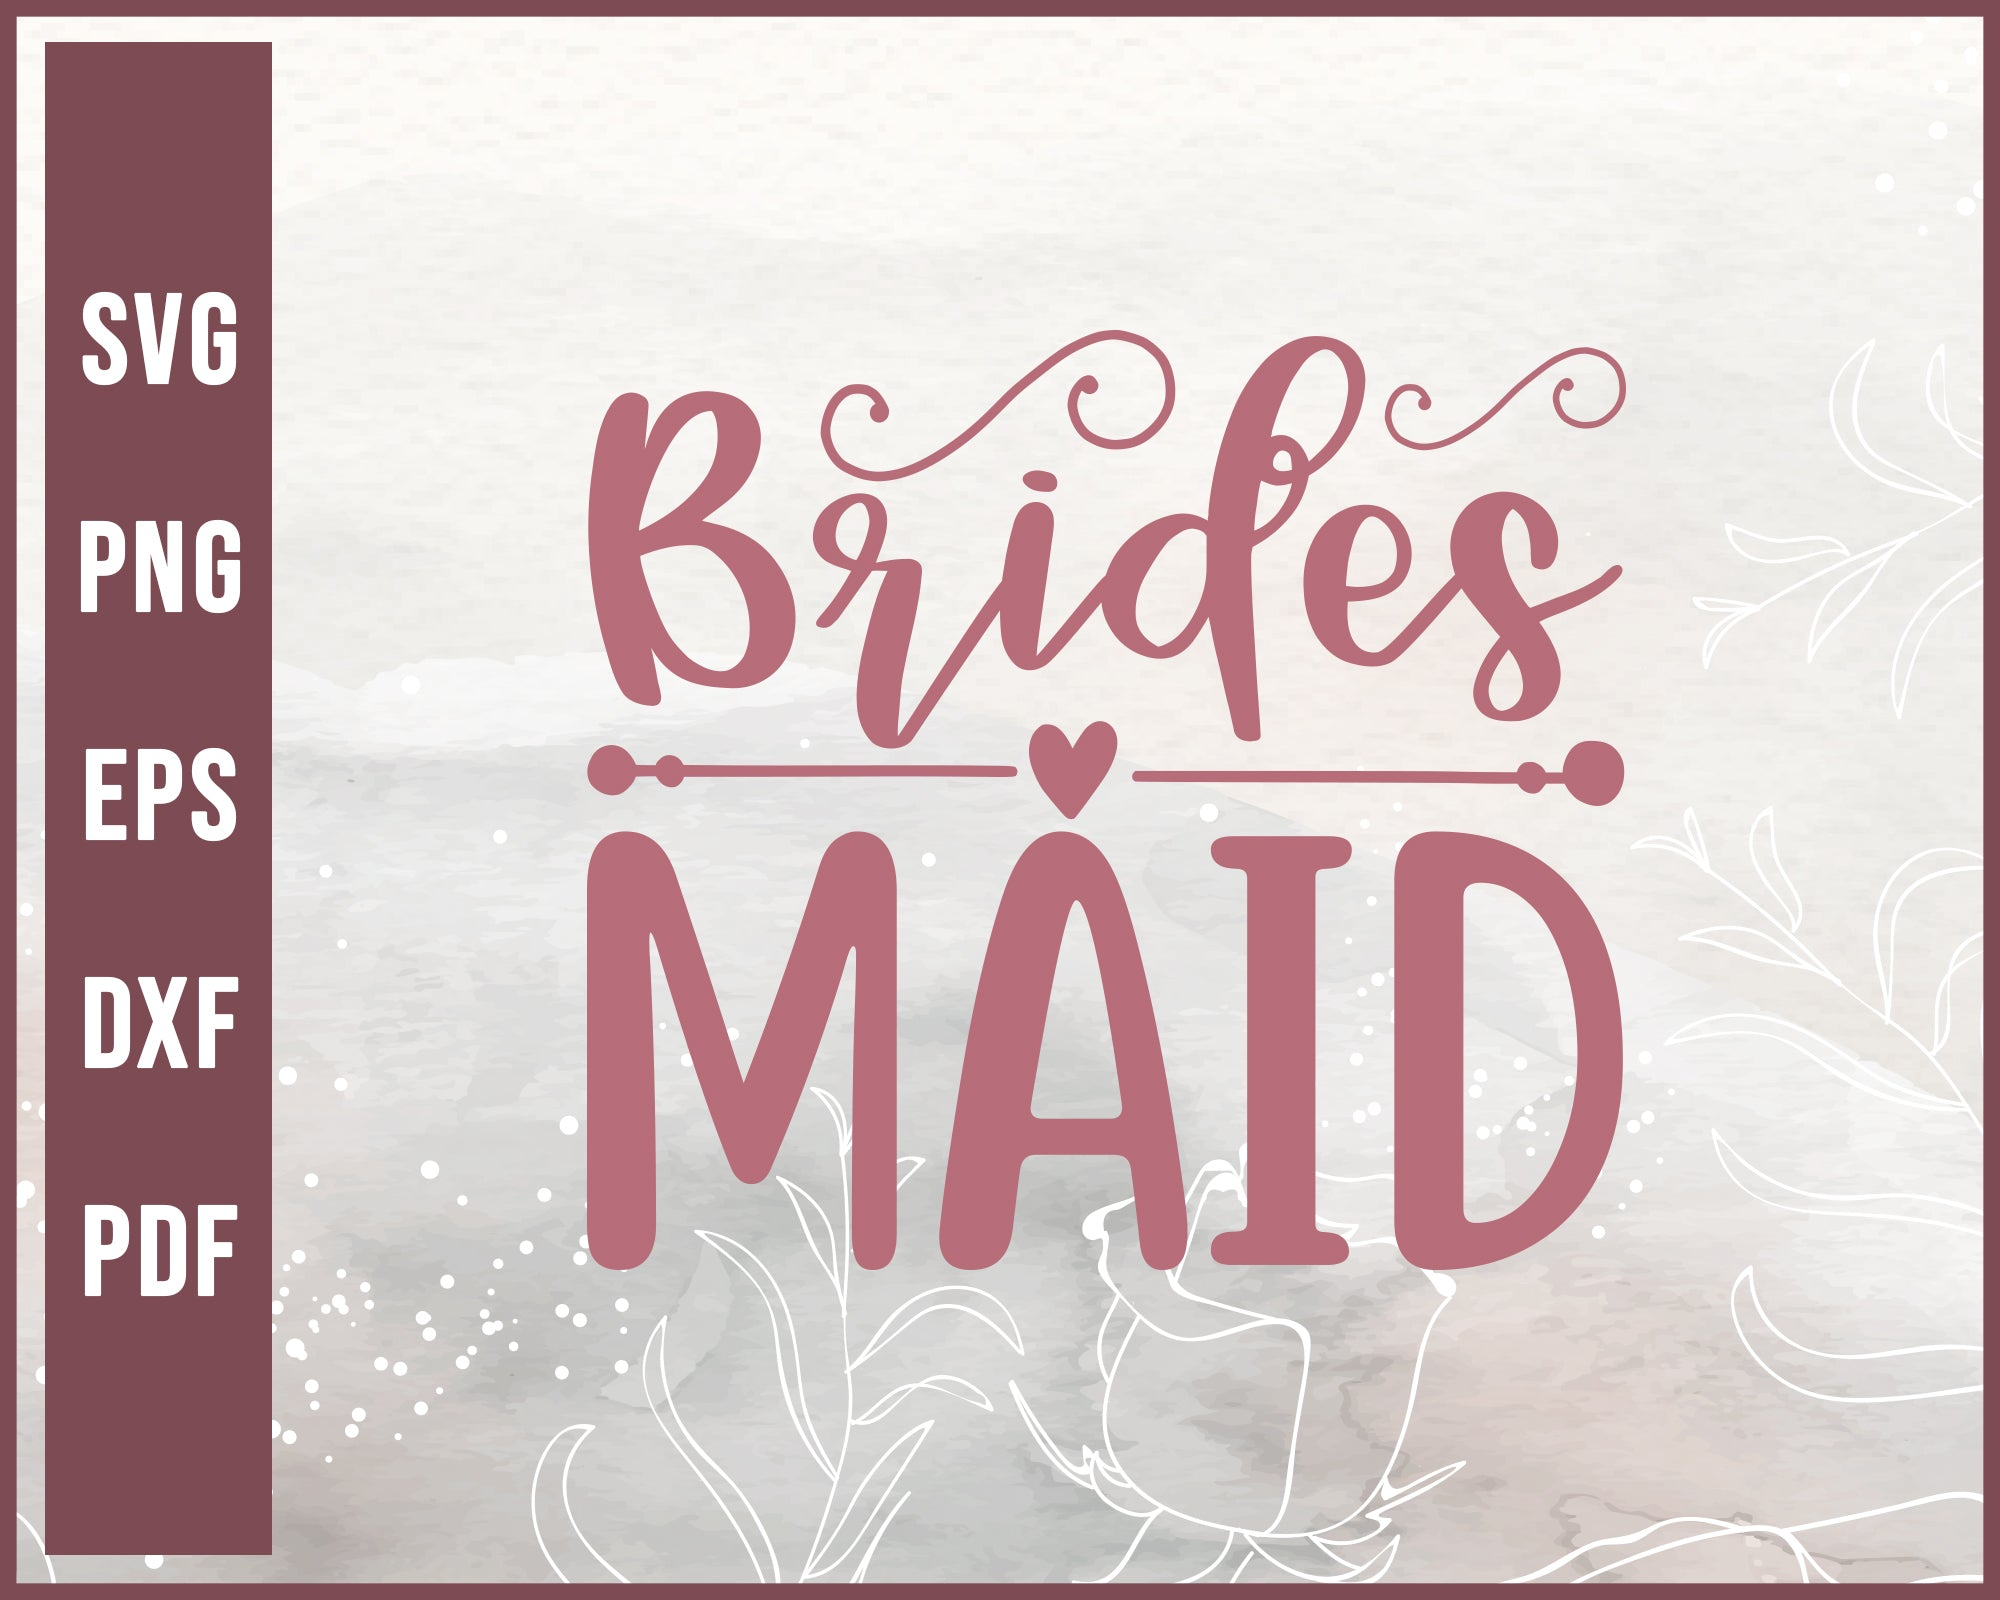 Brides Maid Wedding svg Designs For Cricut Silhouette And eps png Printable Files